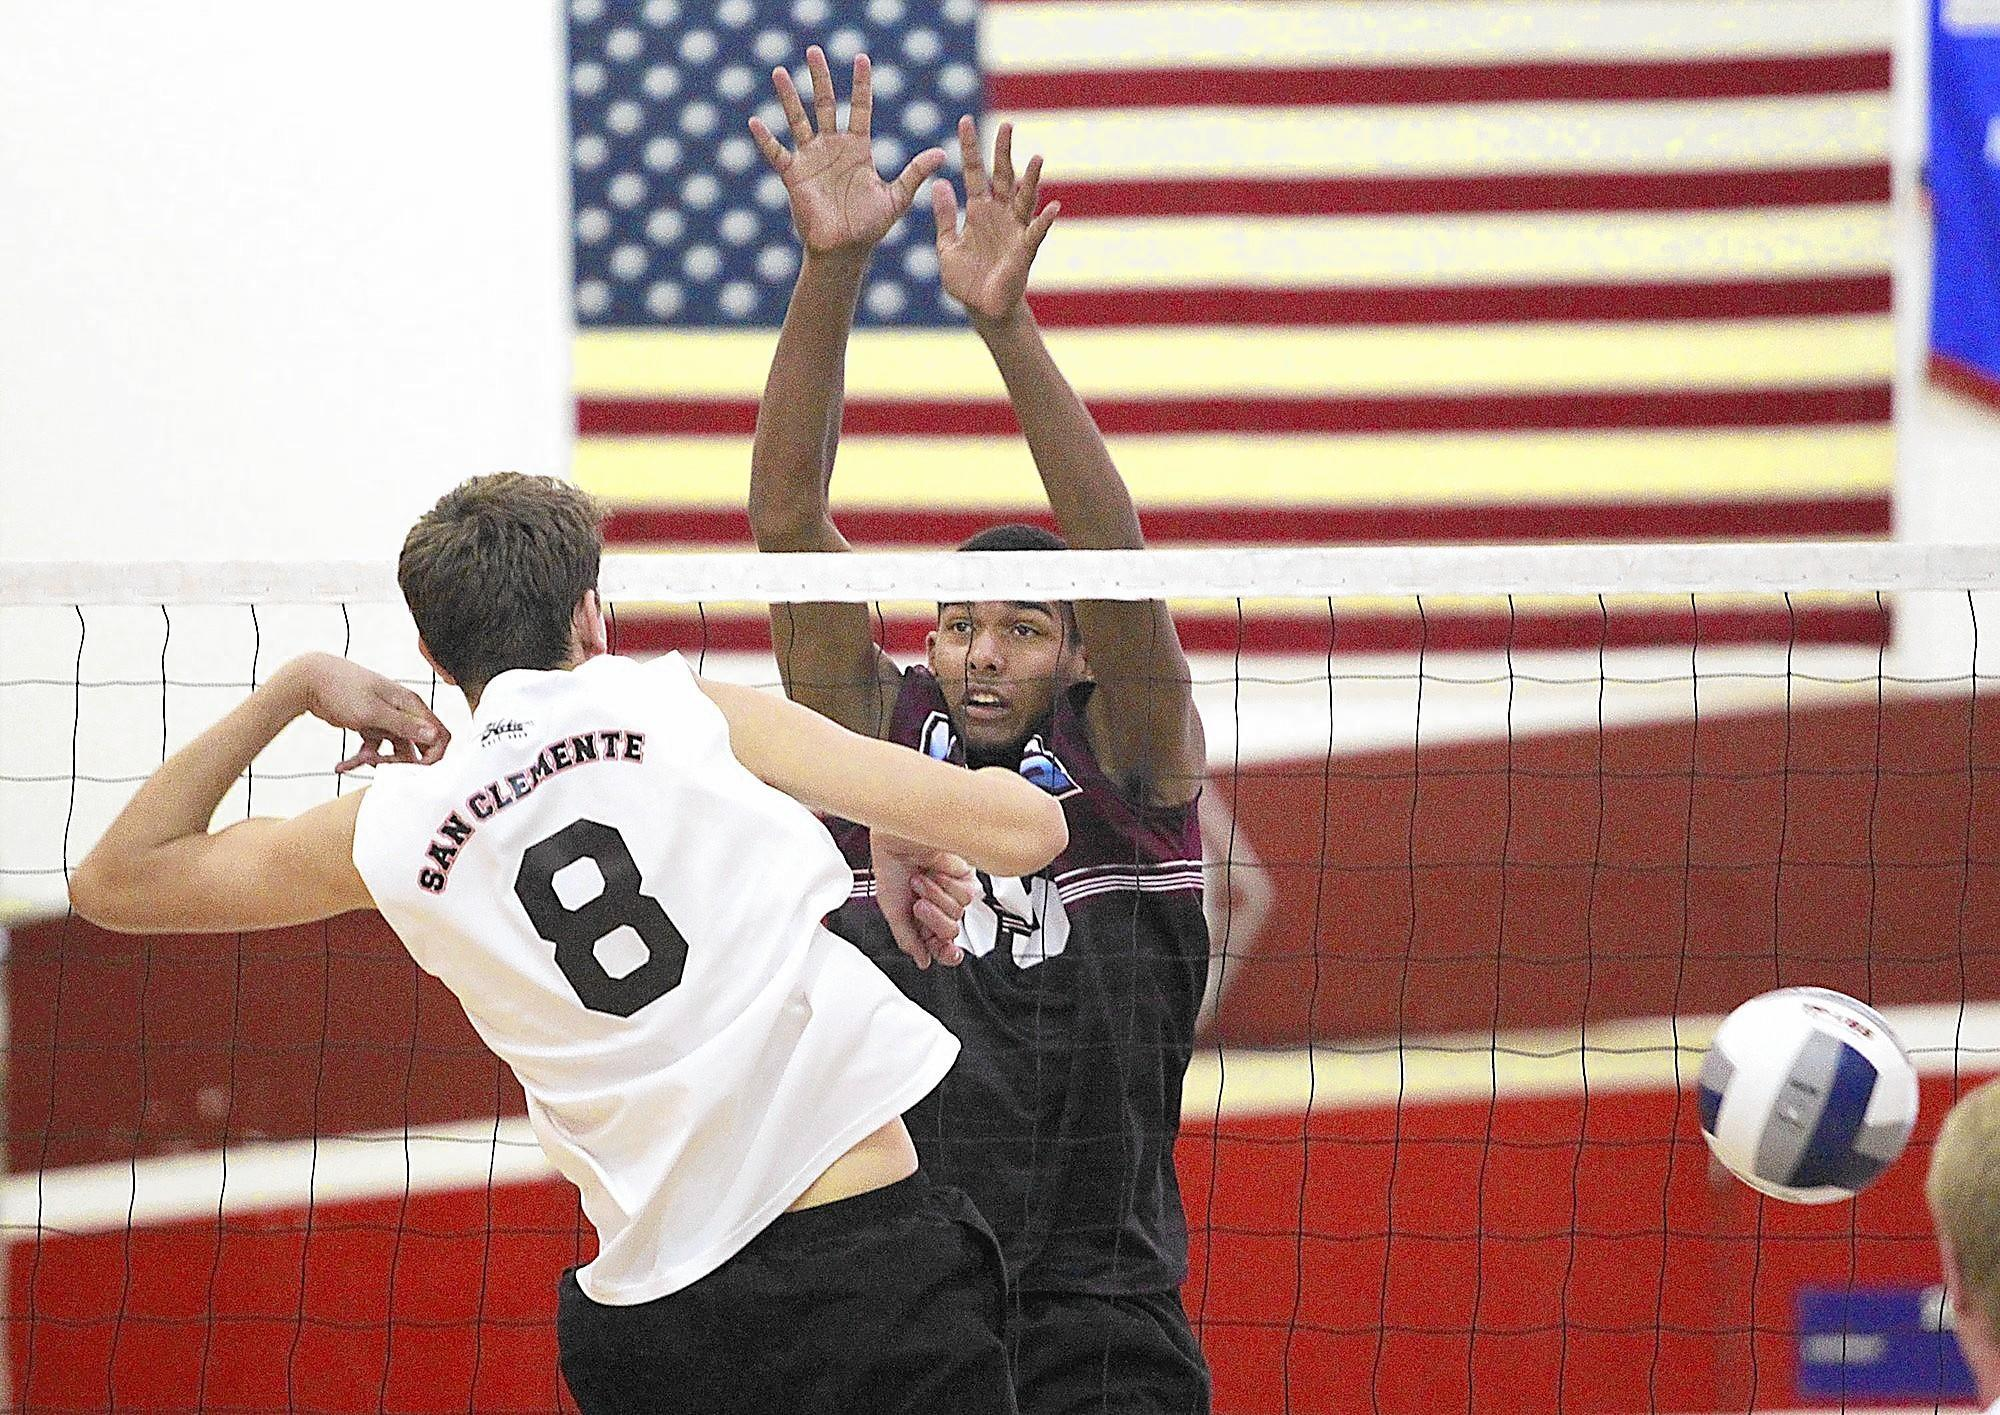 Laguna Beach High's Noah Blanton blocks a shot point blank against San Clemente on Tuesday at Laguna Beach High.